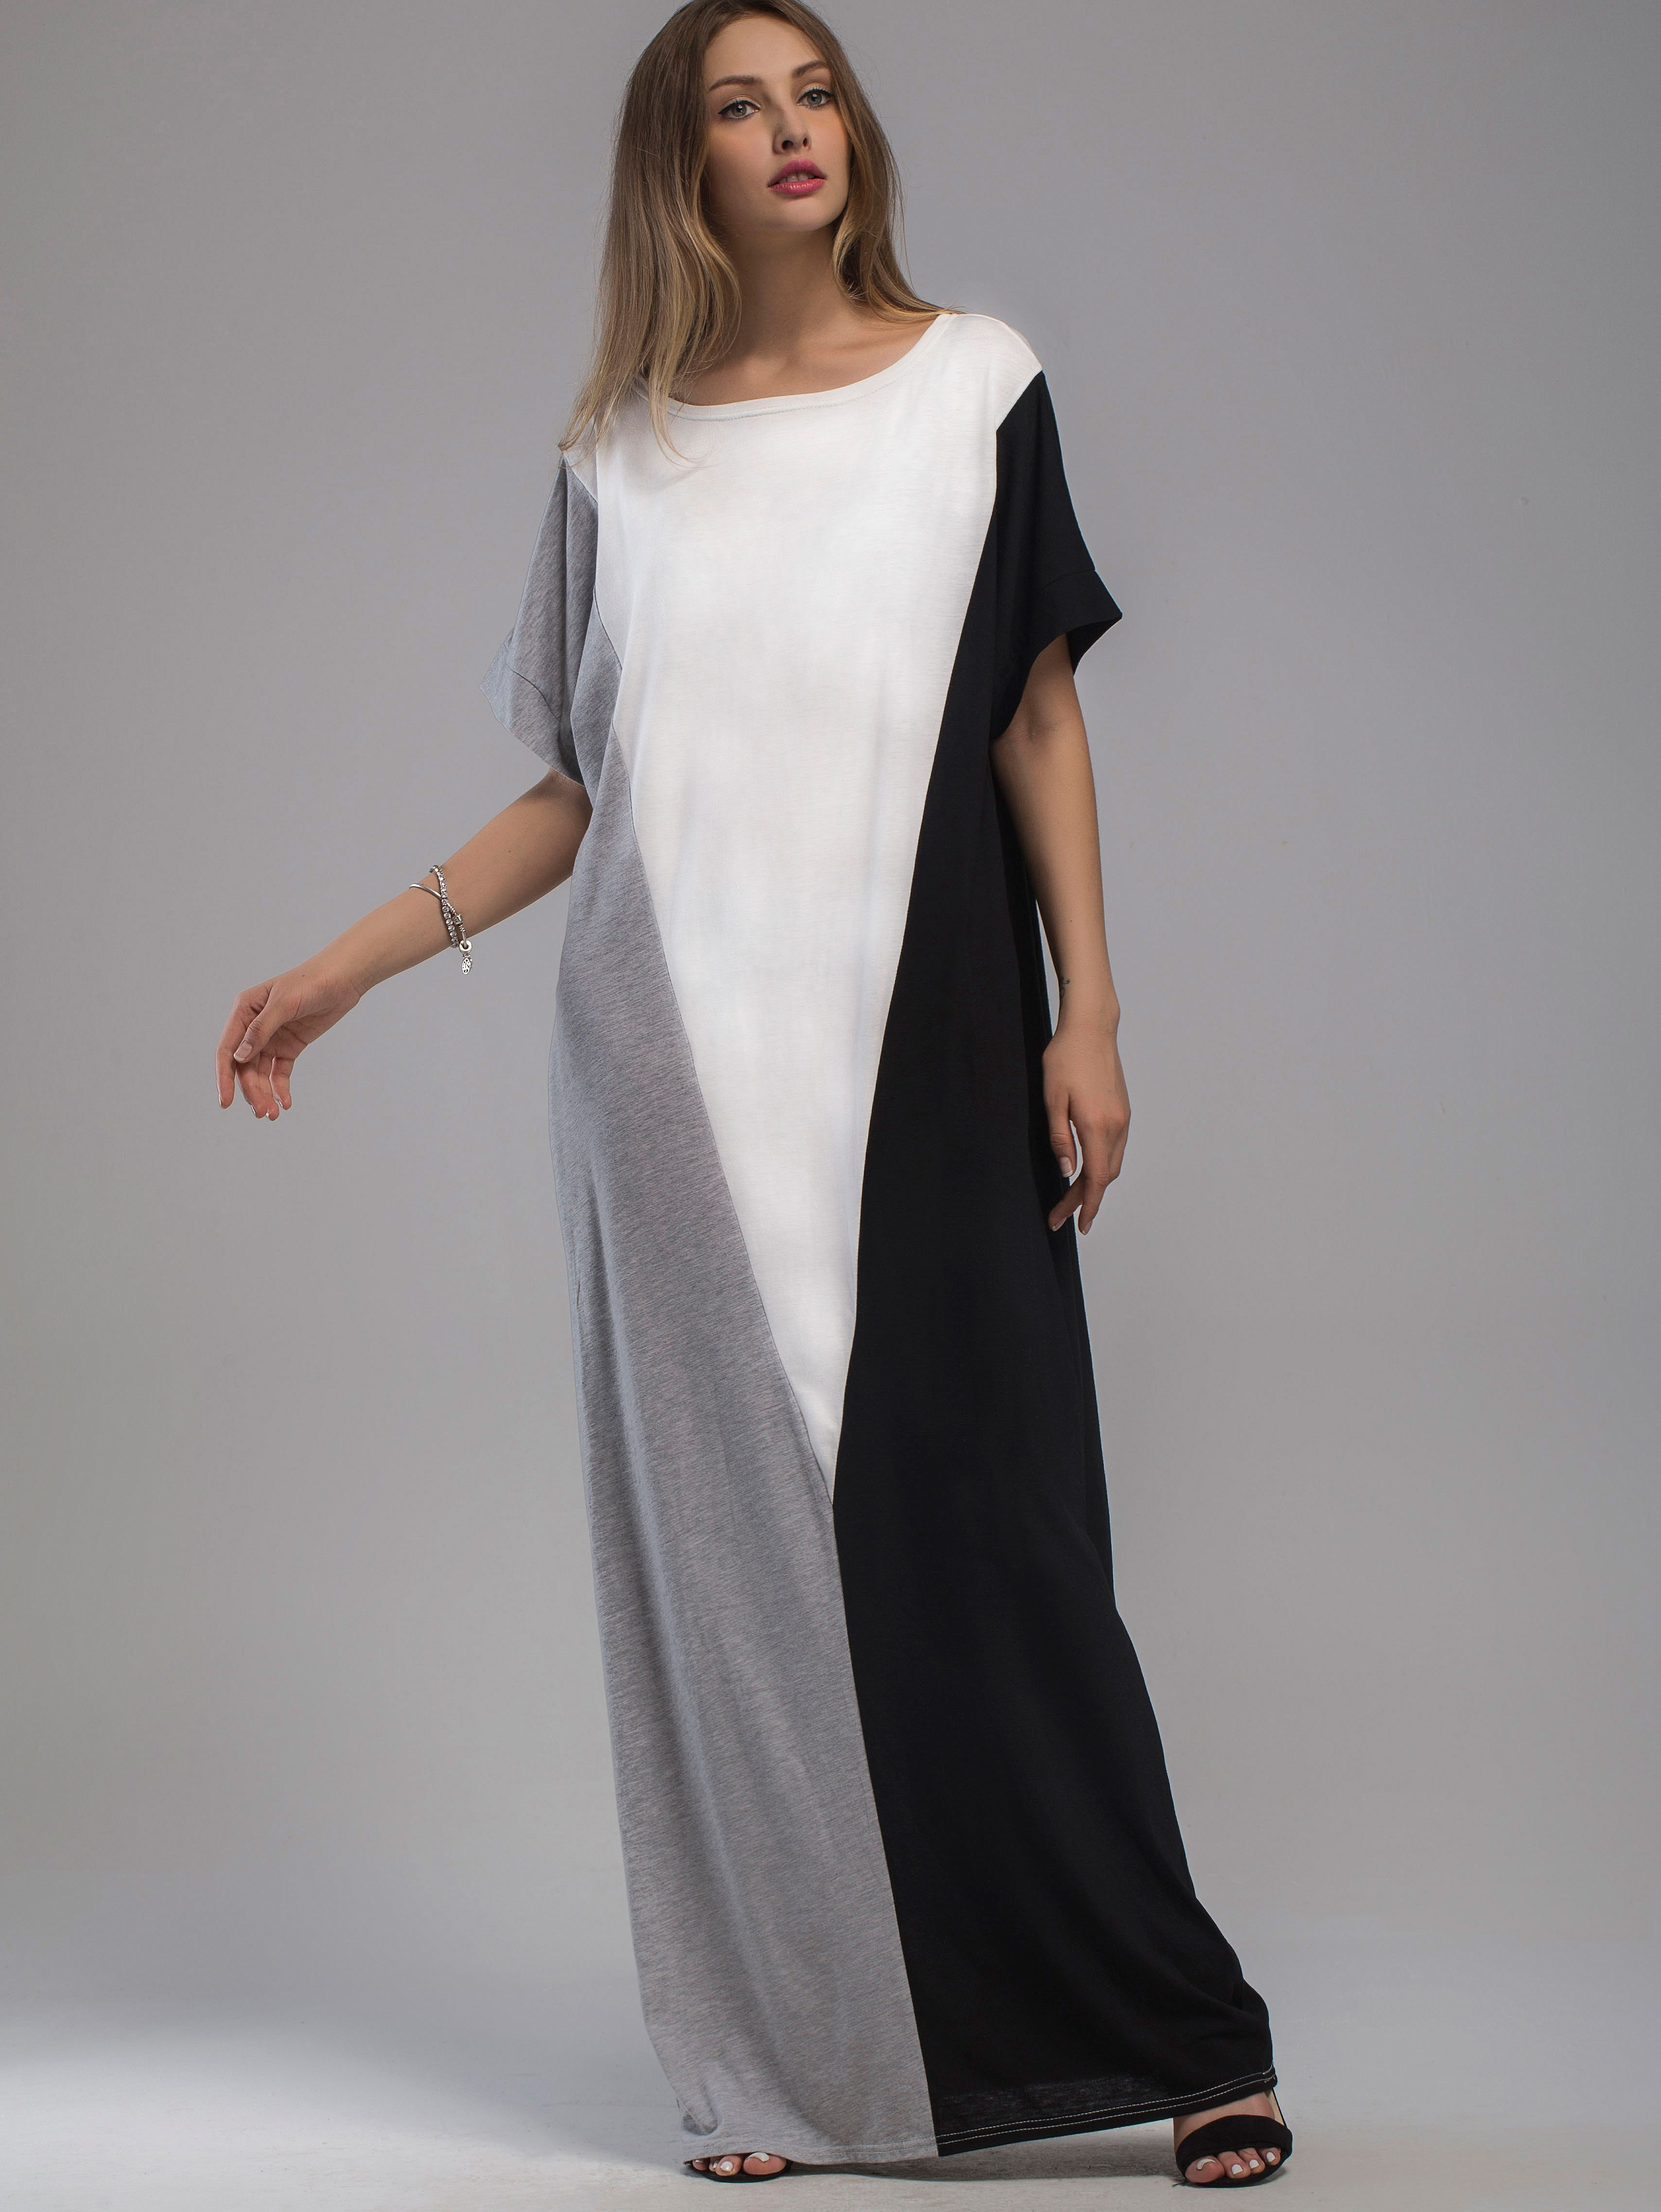 Color Block Full Length Dress With Pockets. Eerbare kleding. Eng ...